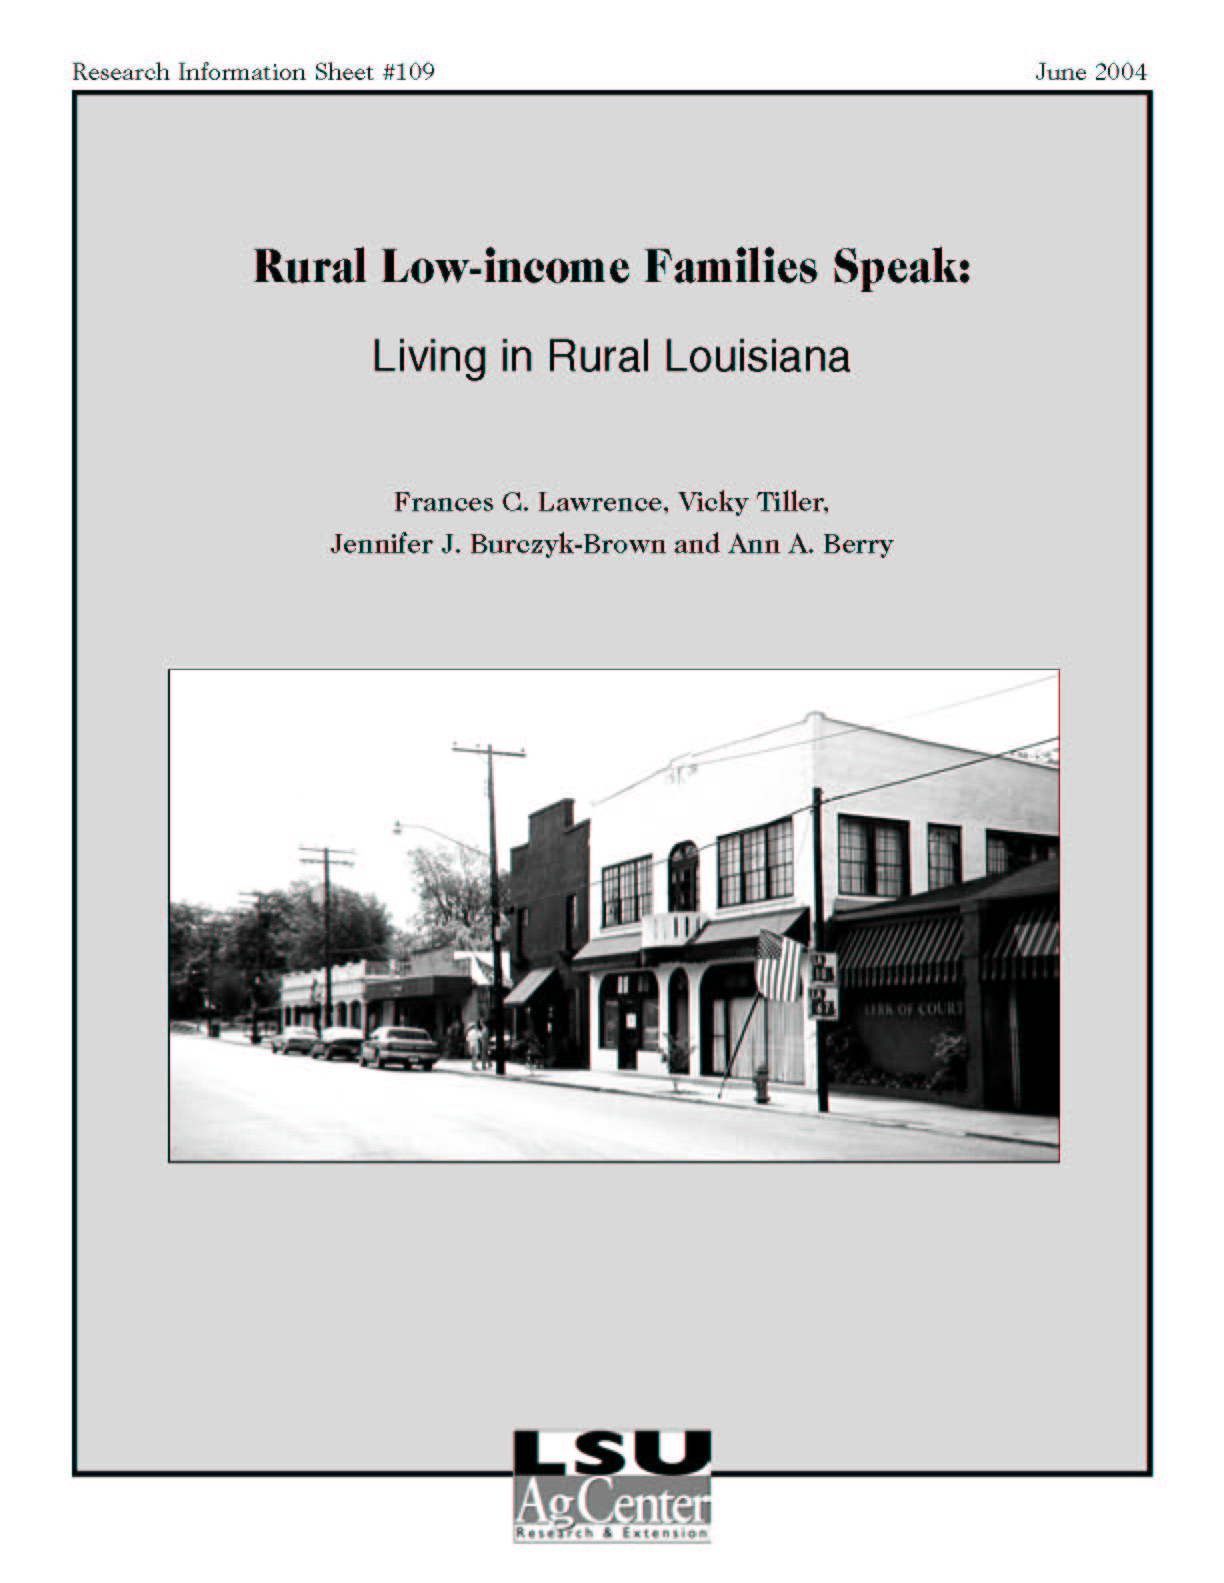 Rural Low-income Families Speak: Living in Rural Louisiana (June 2004)